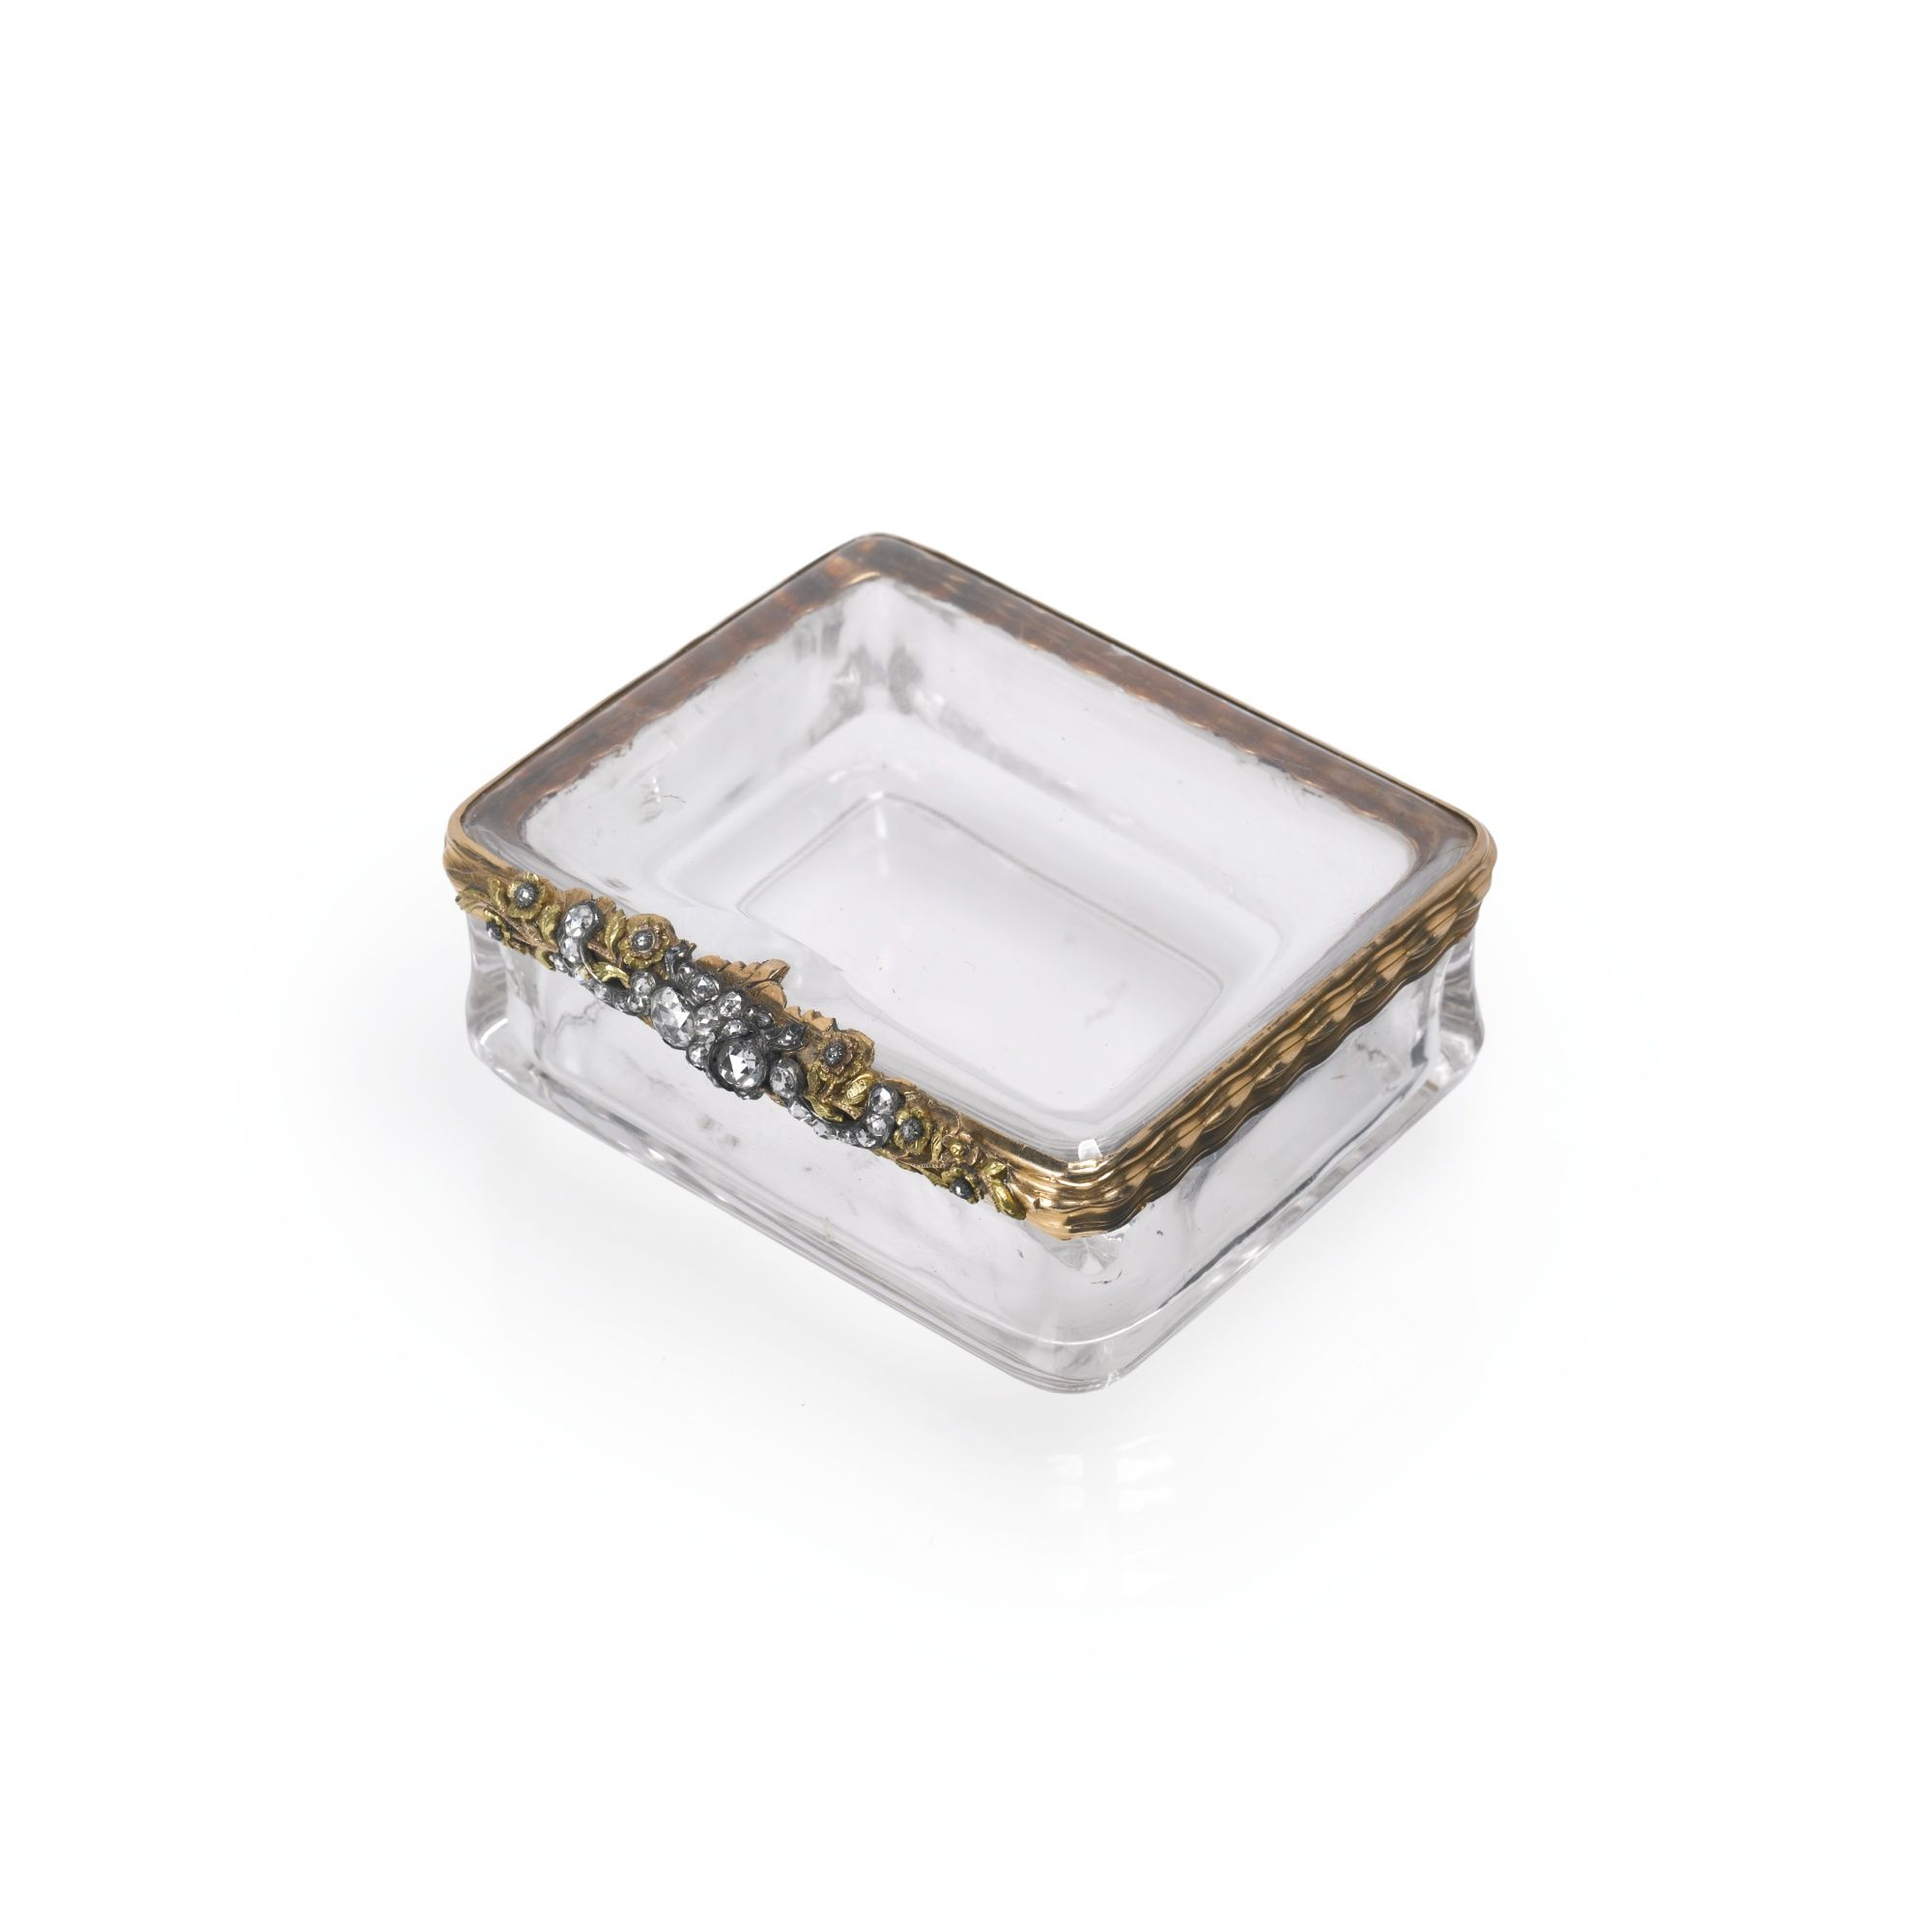 A gold, rock crystal and diamond-set snuff box, Probably German, circa 1750 | Lot | Sotheby's